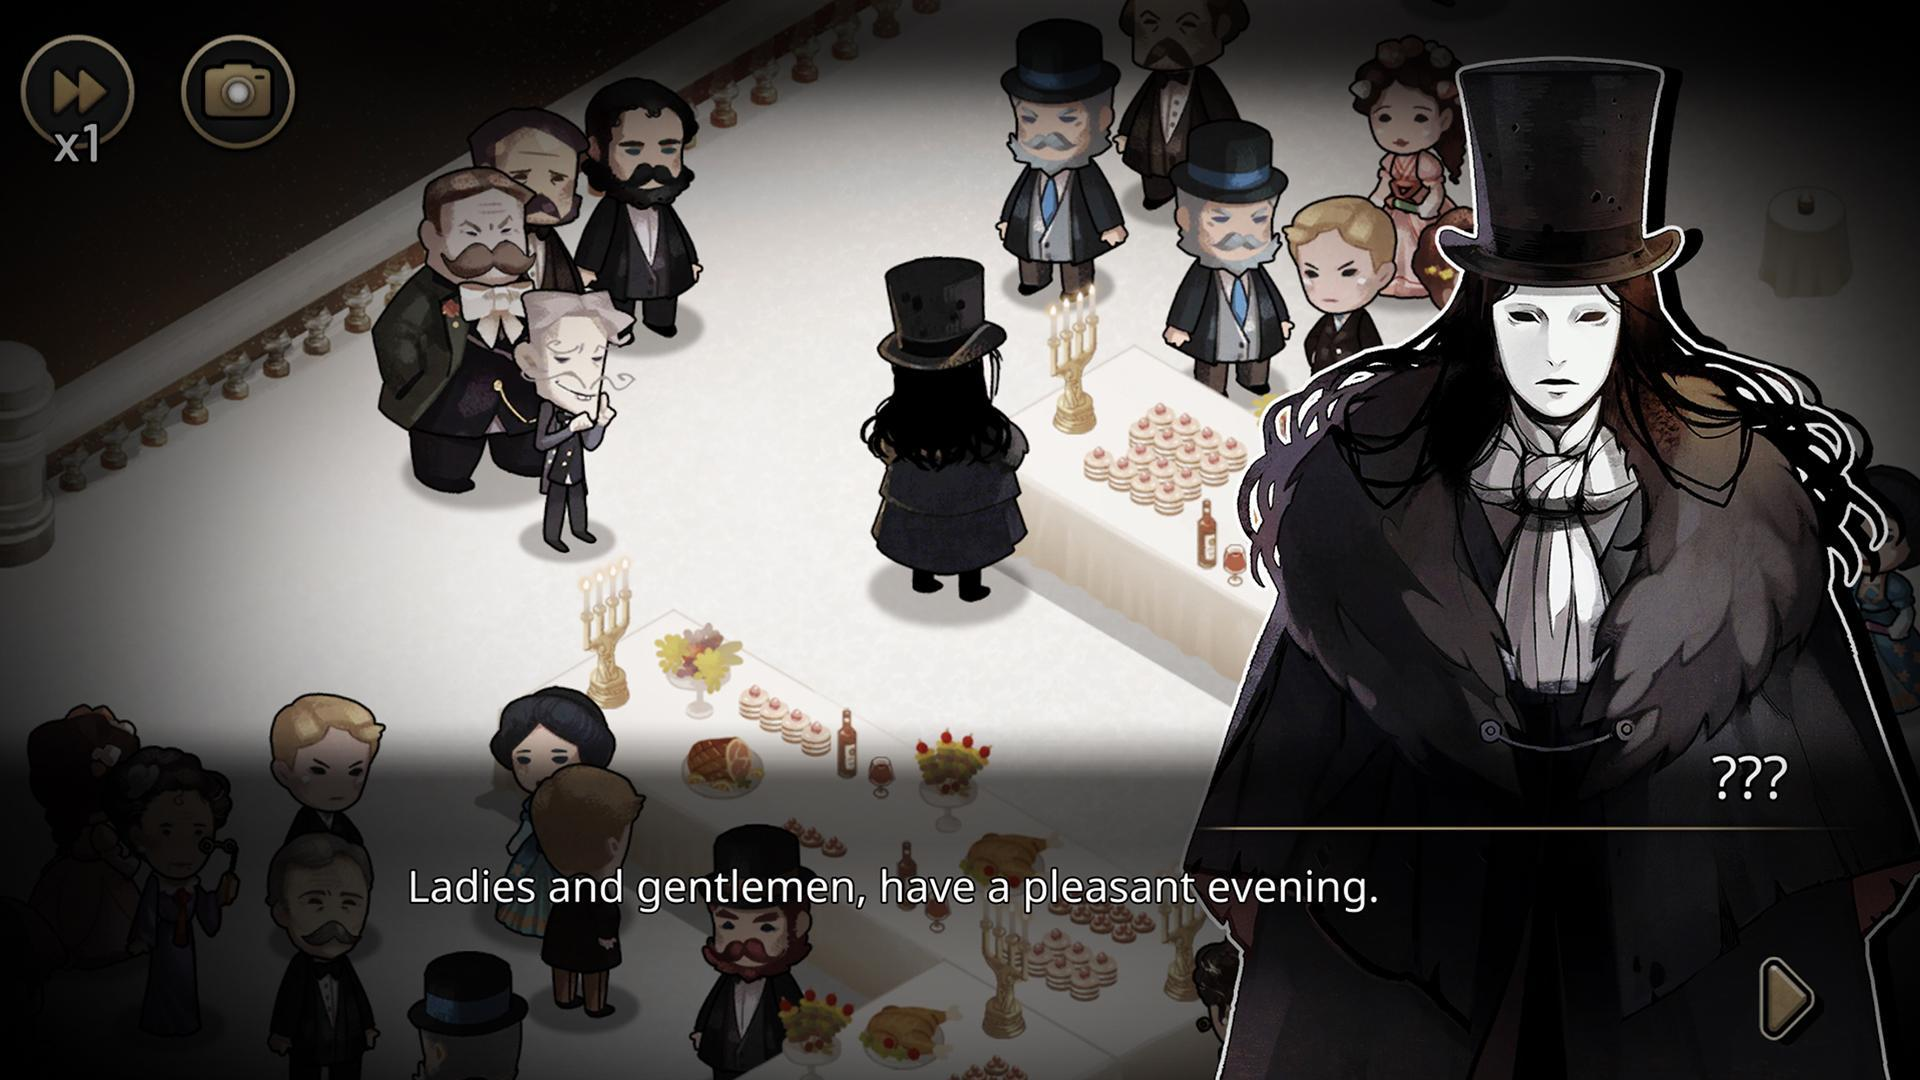 Phantom of Opera - Mystery Visual Novel, Thriller for Android - APK Download